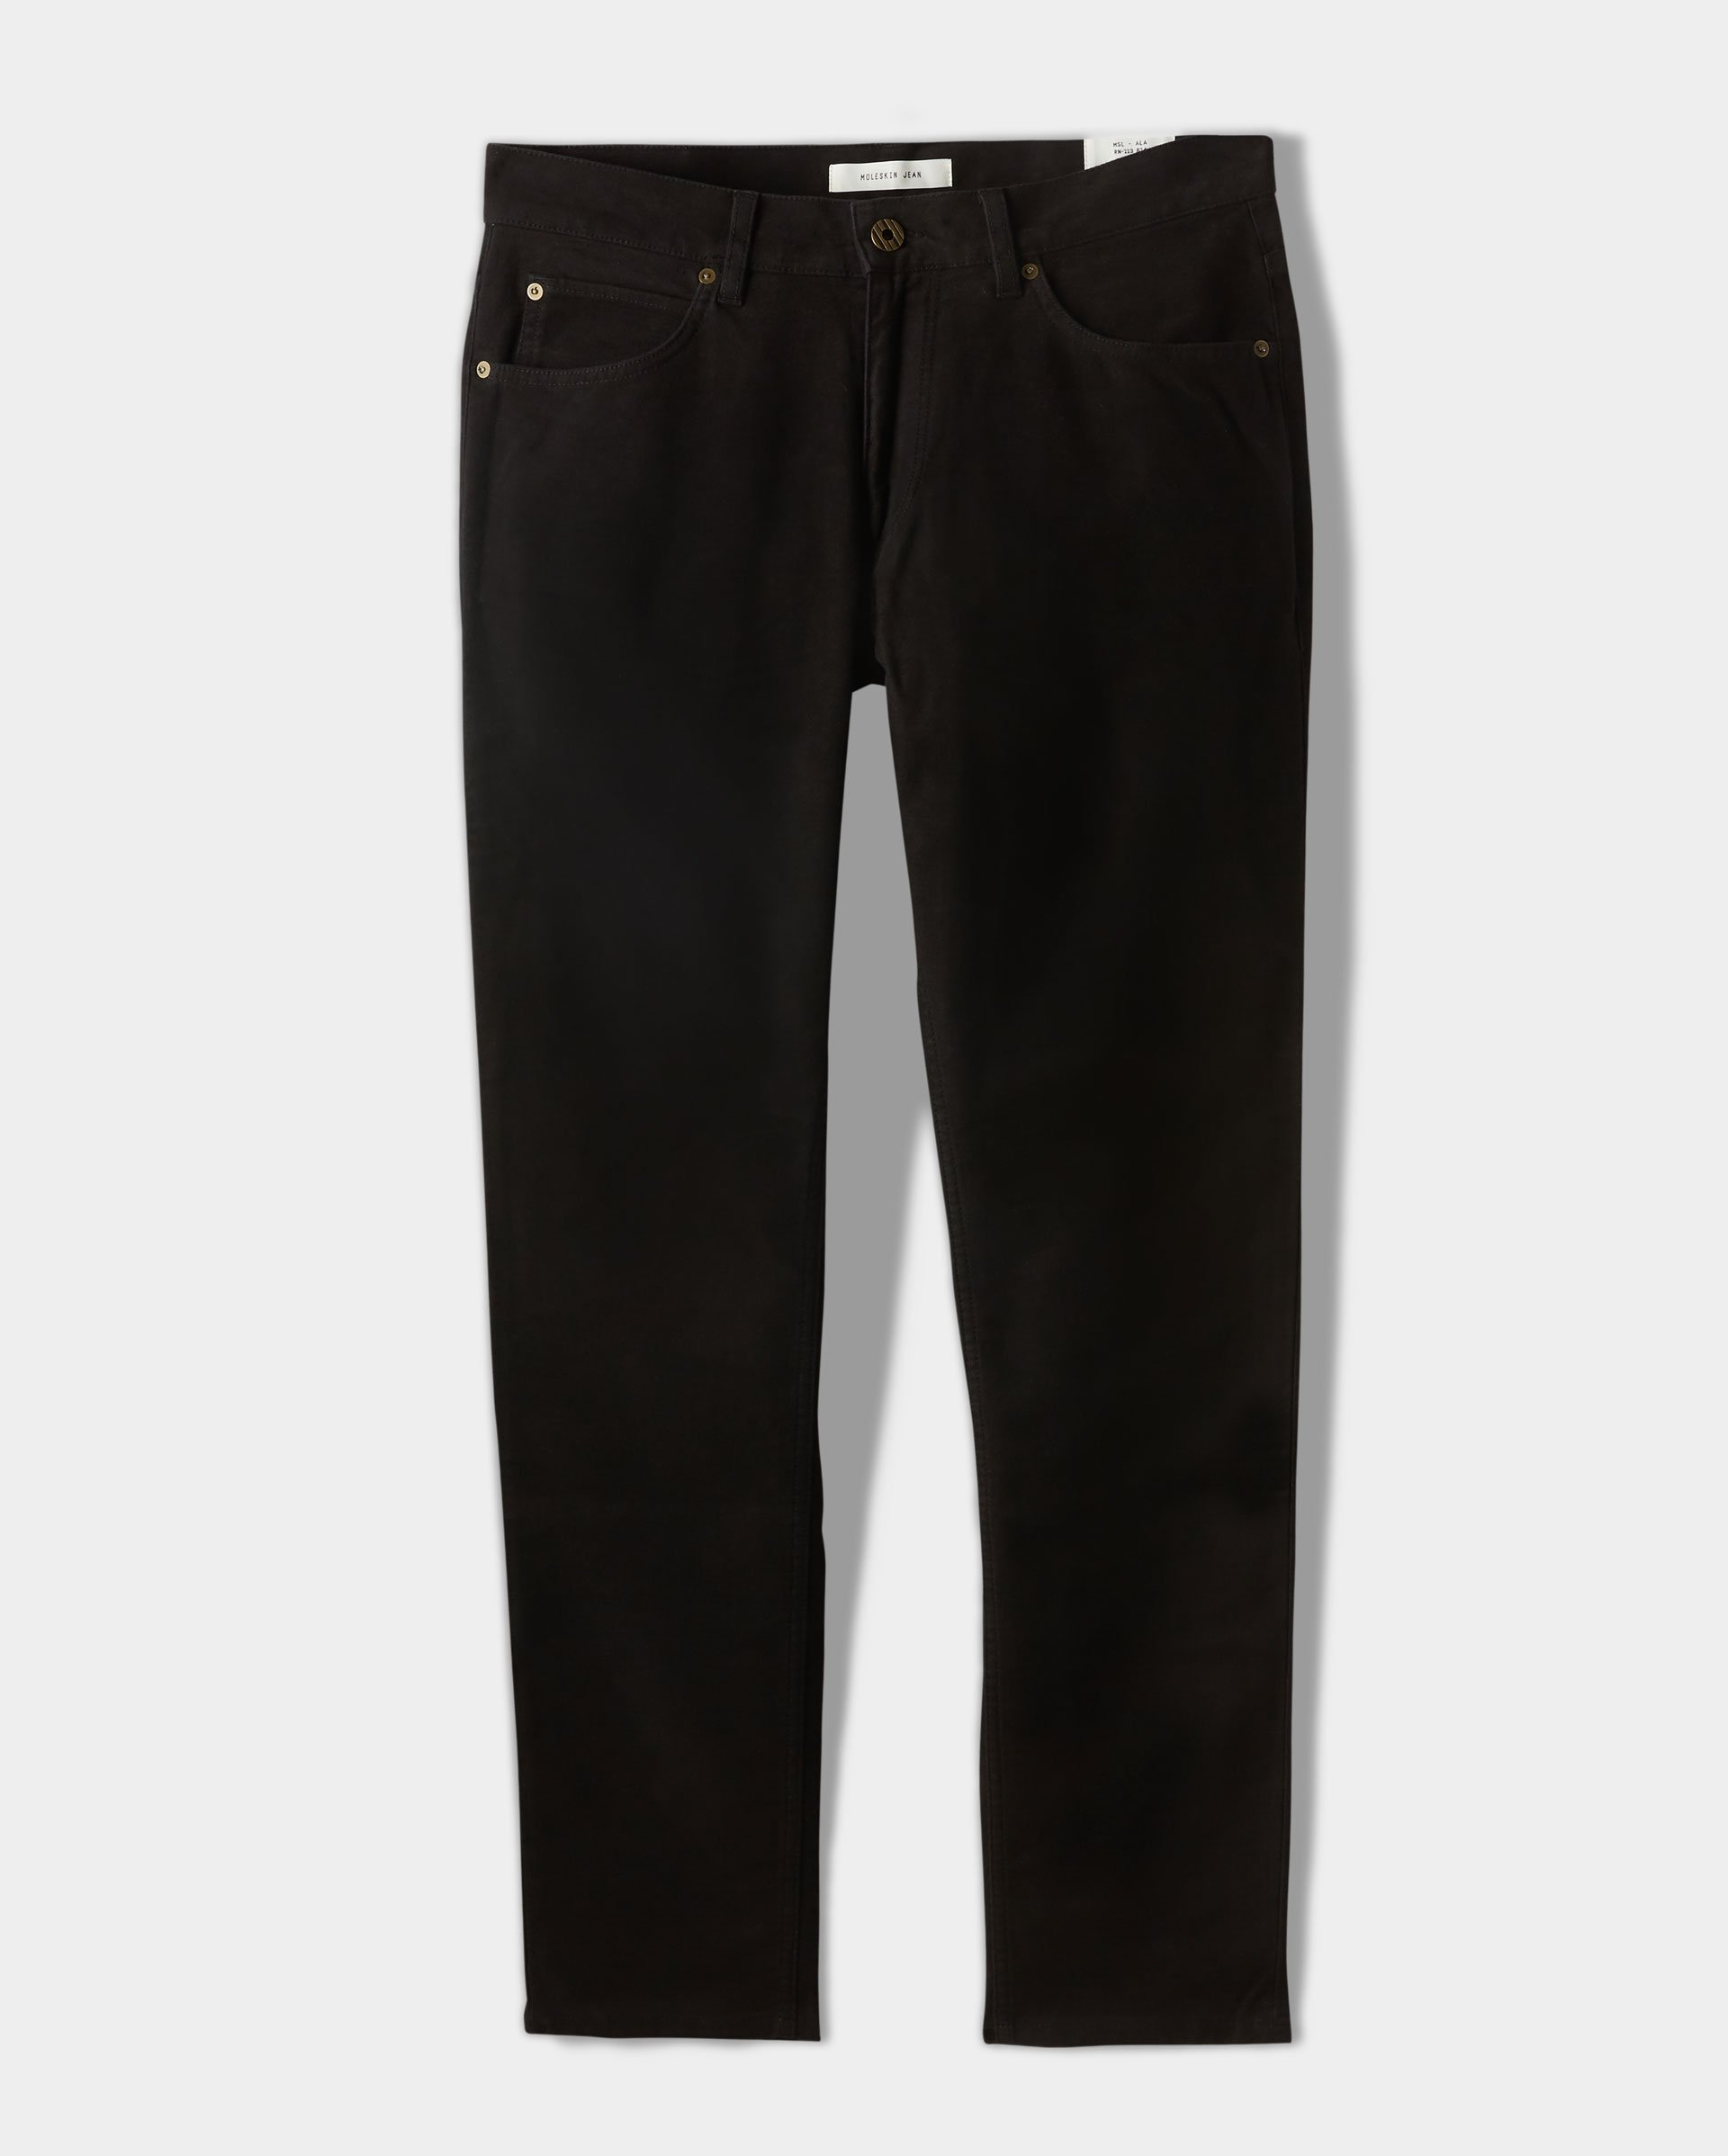 black jeans from billy reid on white background